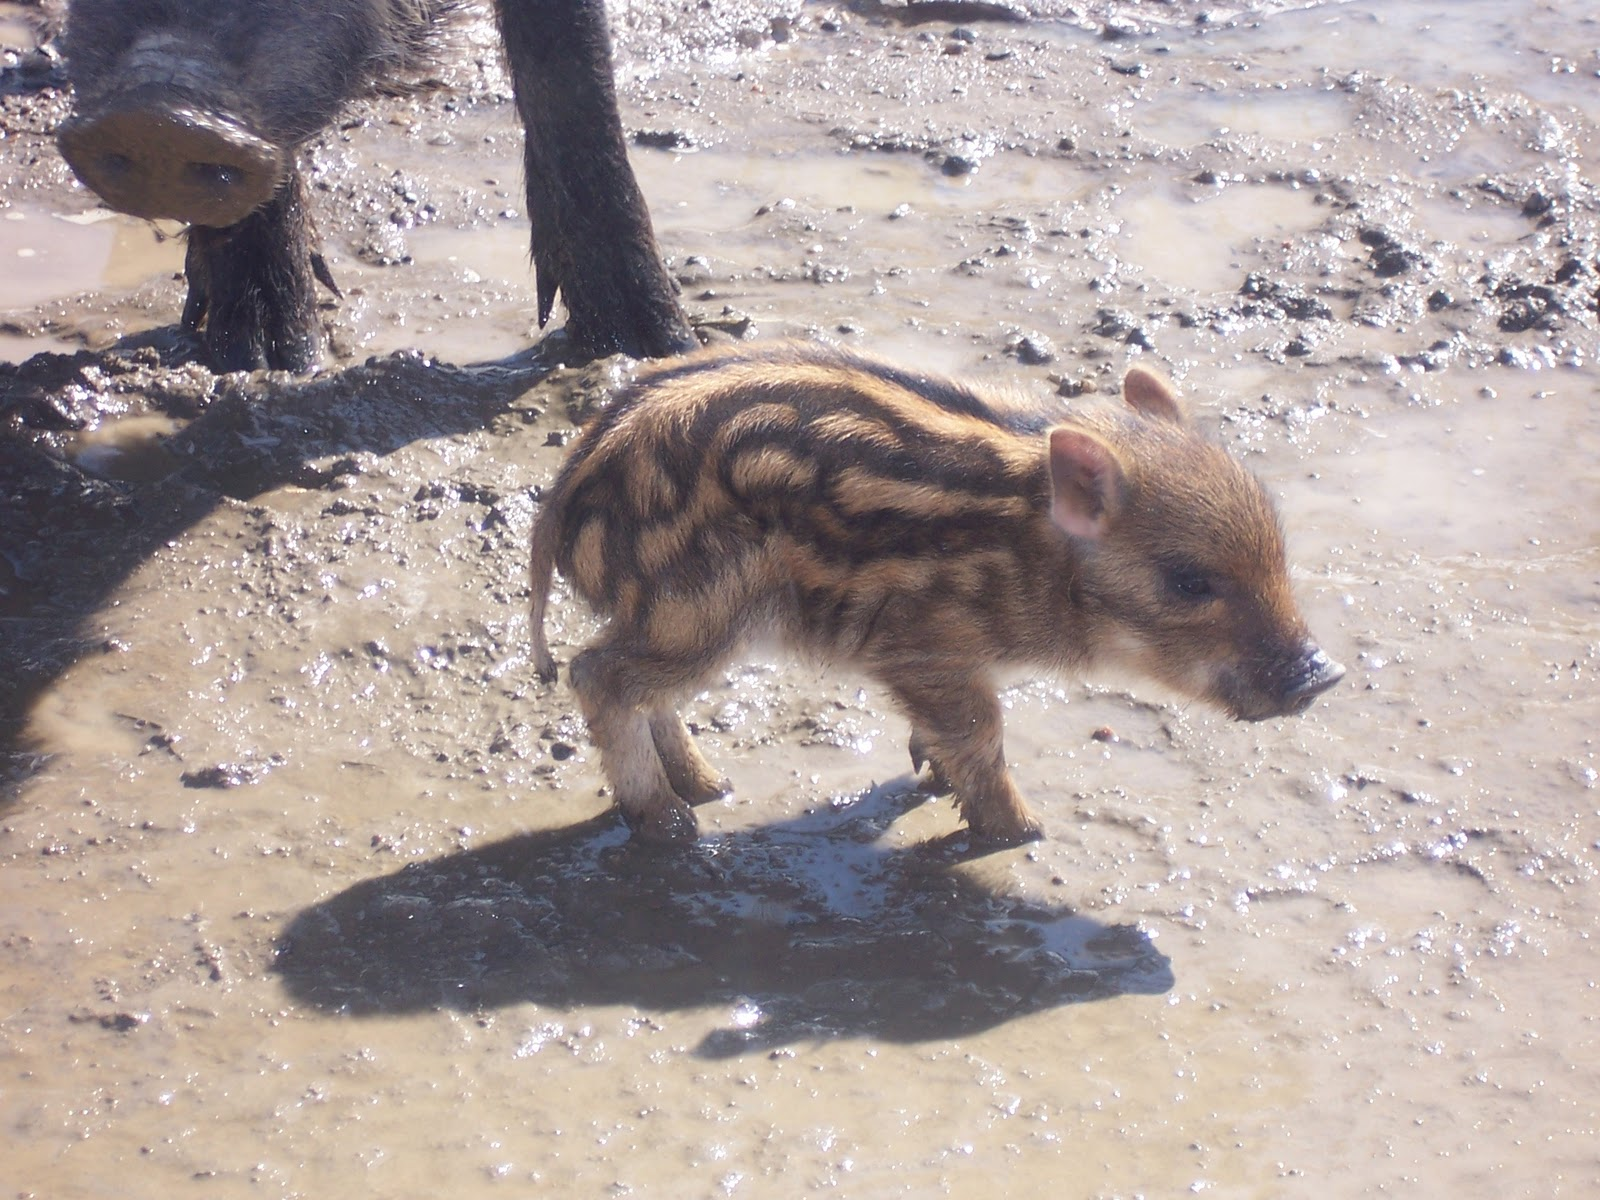 Random Blog About Baby Boars Ritalovestowrite